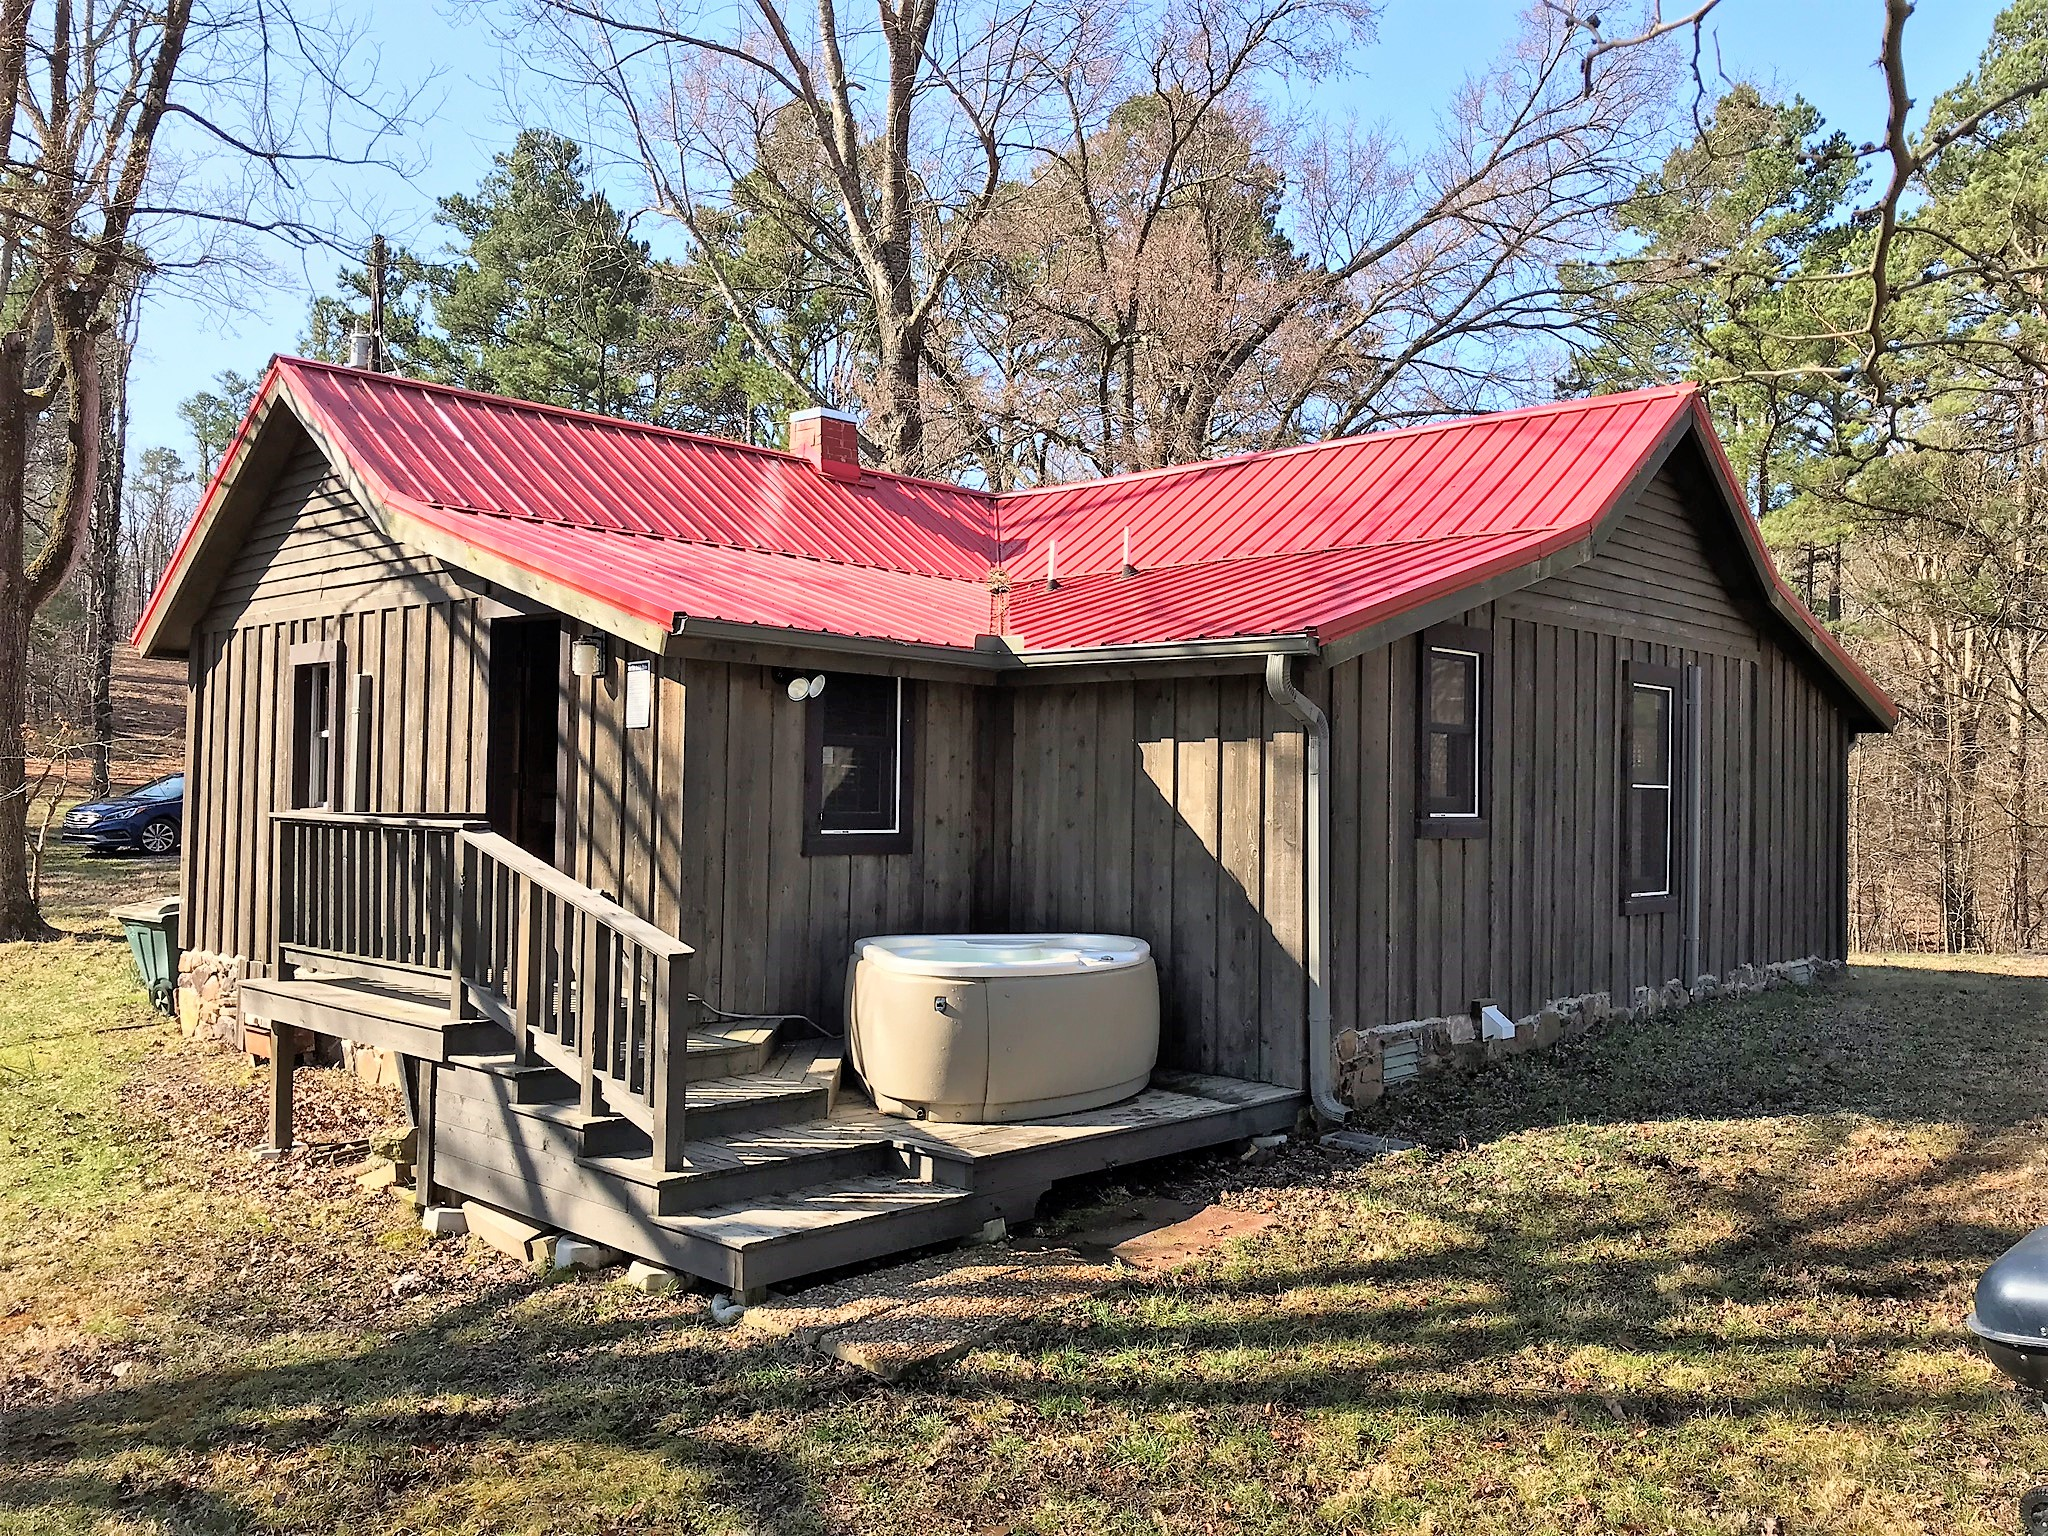 cabins ozark cabin lodge rentals s cody log in branson mo ozarks of legends lake the